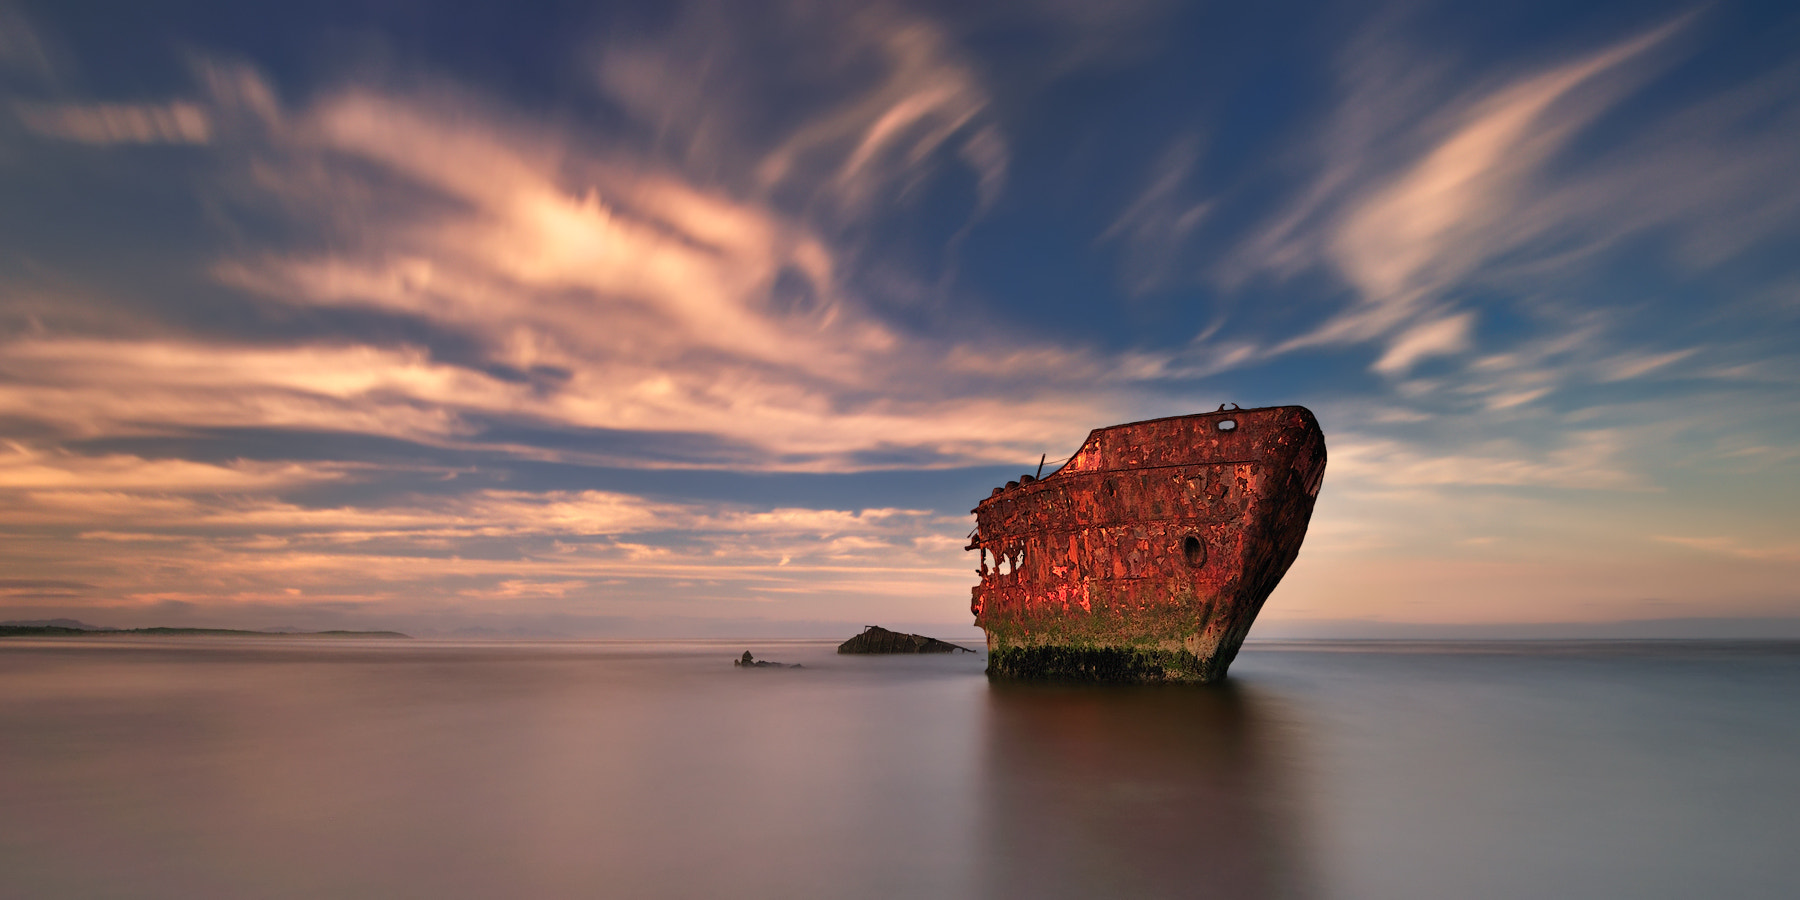 Photograph The Wreck... by Pawel Kucharski on 500px